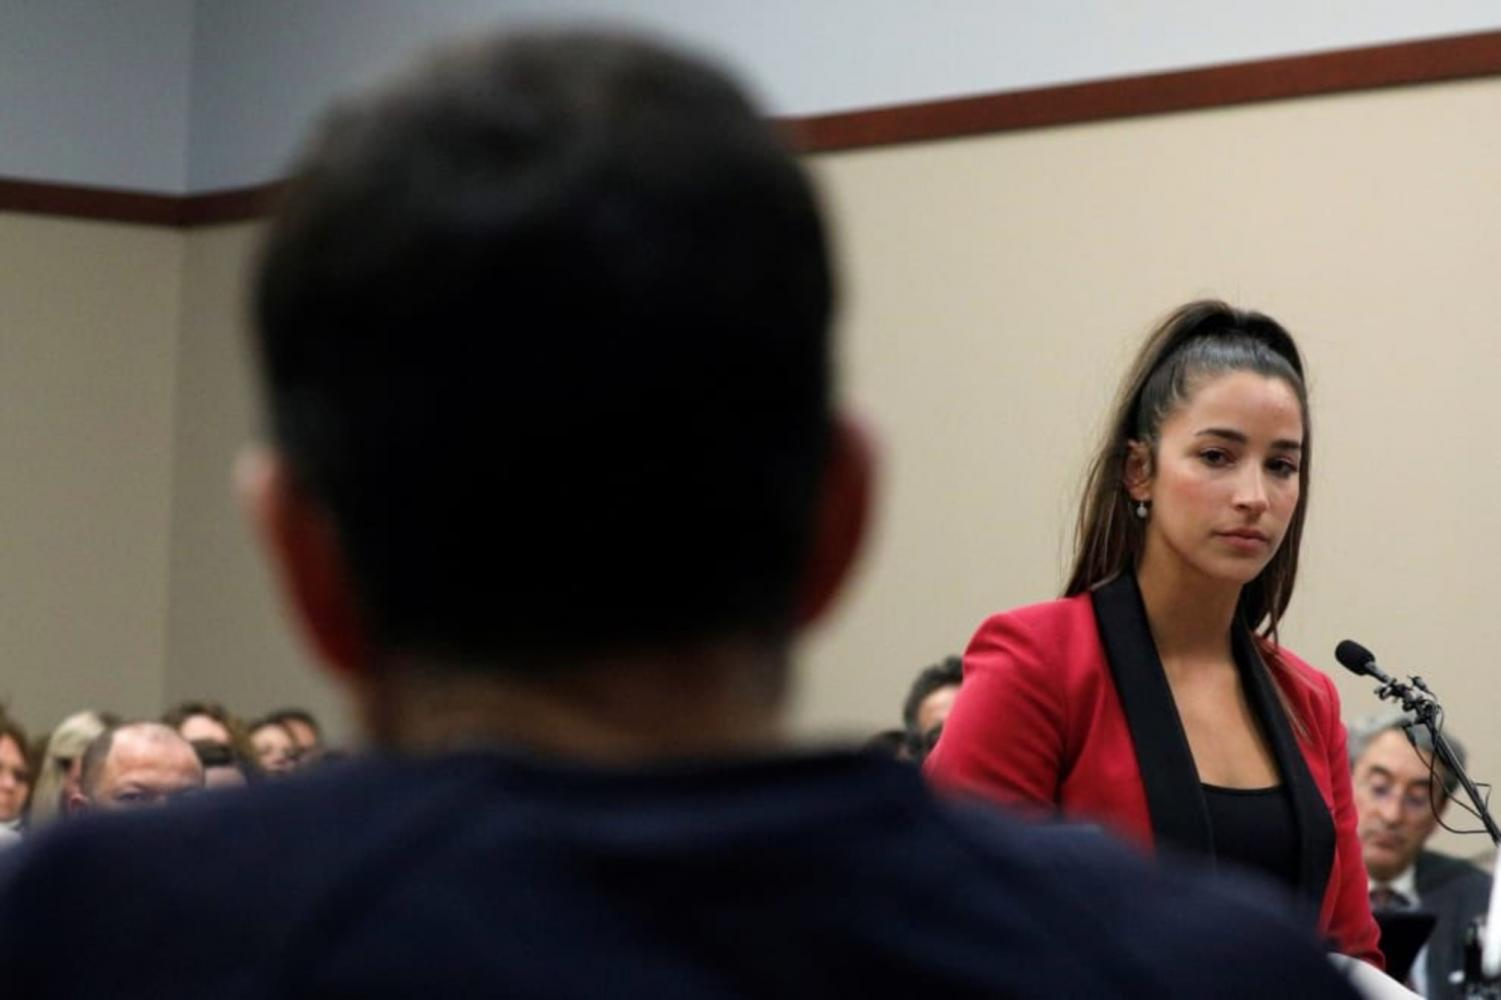 Olympic gymnast Aly Raisman testifying at Larry Nassar's sentencing on Friday, Jan. 19. Raisman is one of 100 plus women accusing Nassar of sexual assault.